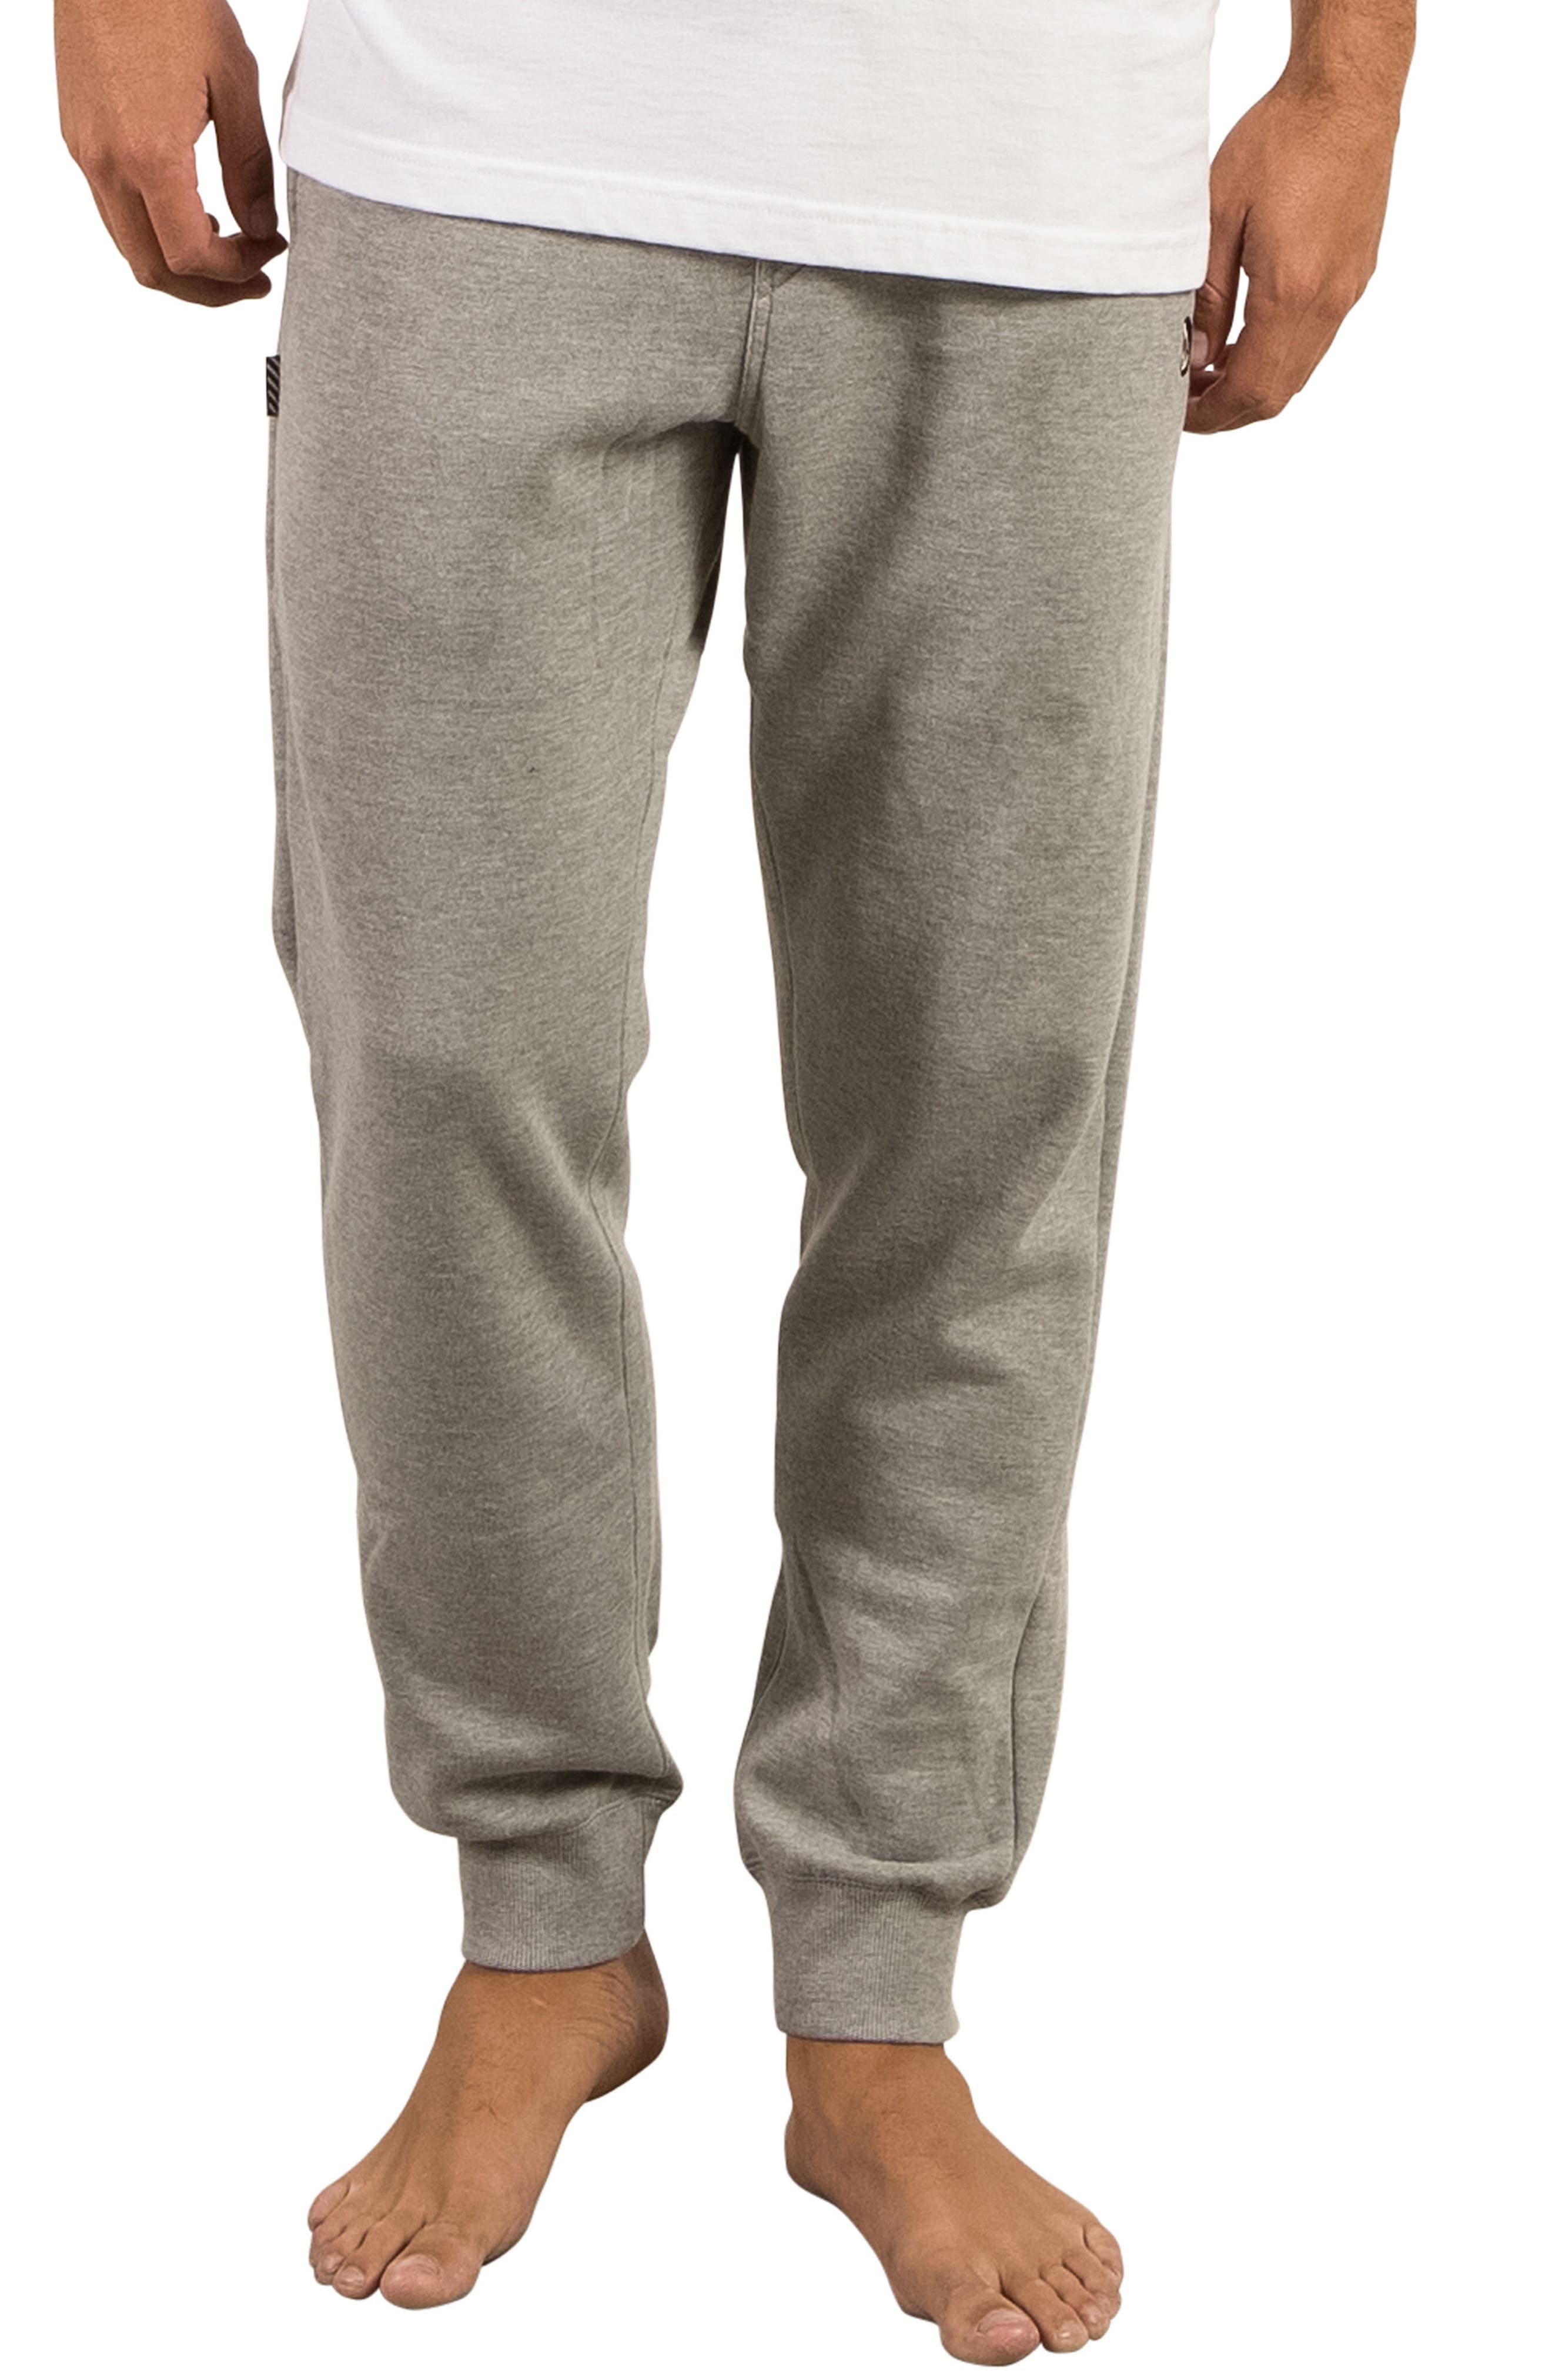 Alternate Image 1 Selected - Volcom Single Stone Fleece Sweatpants